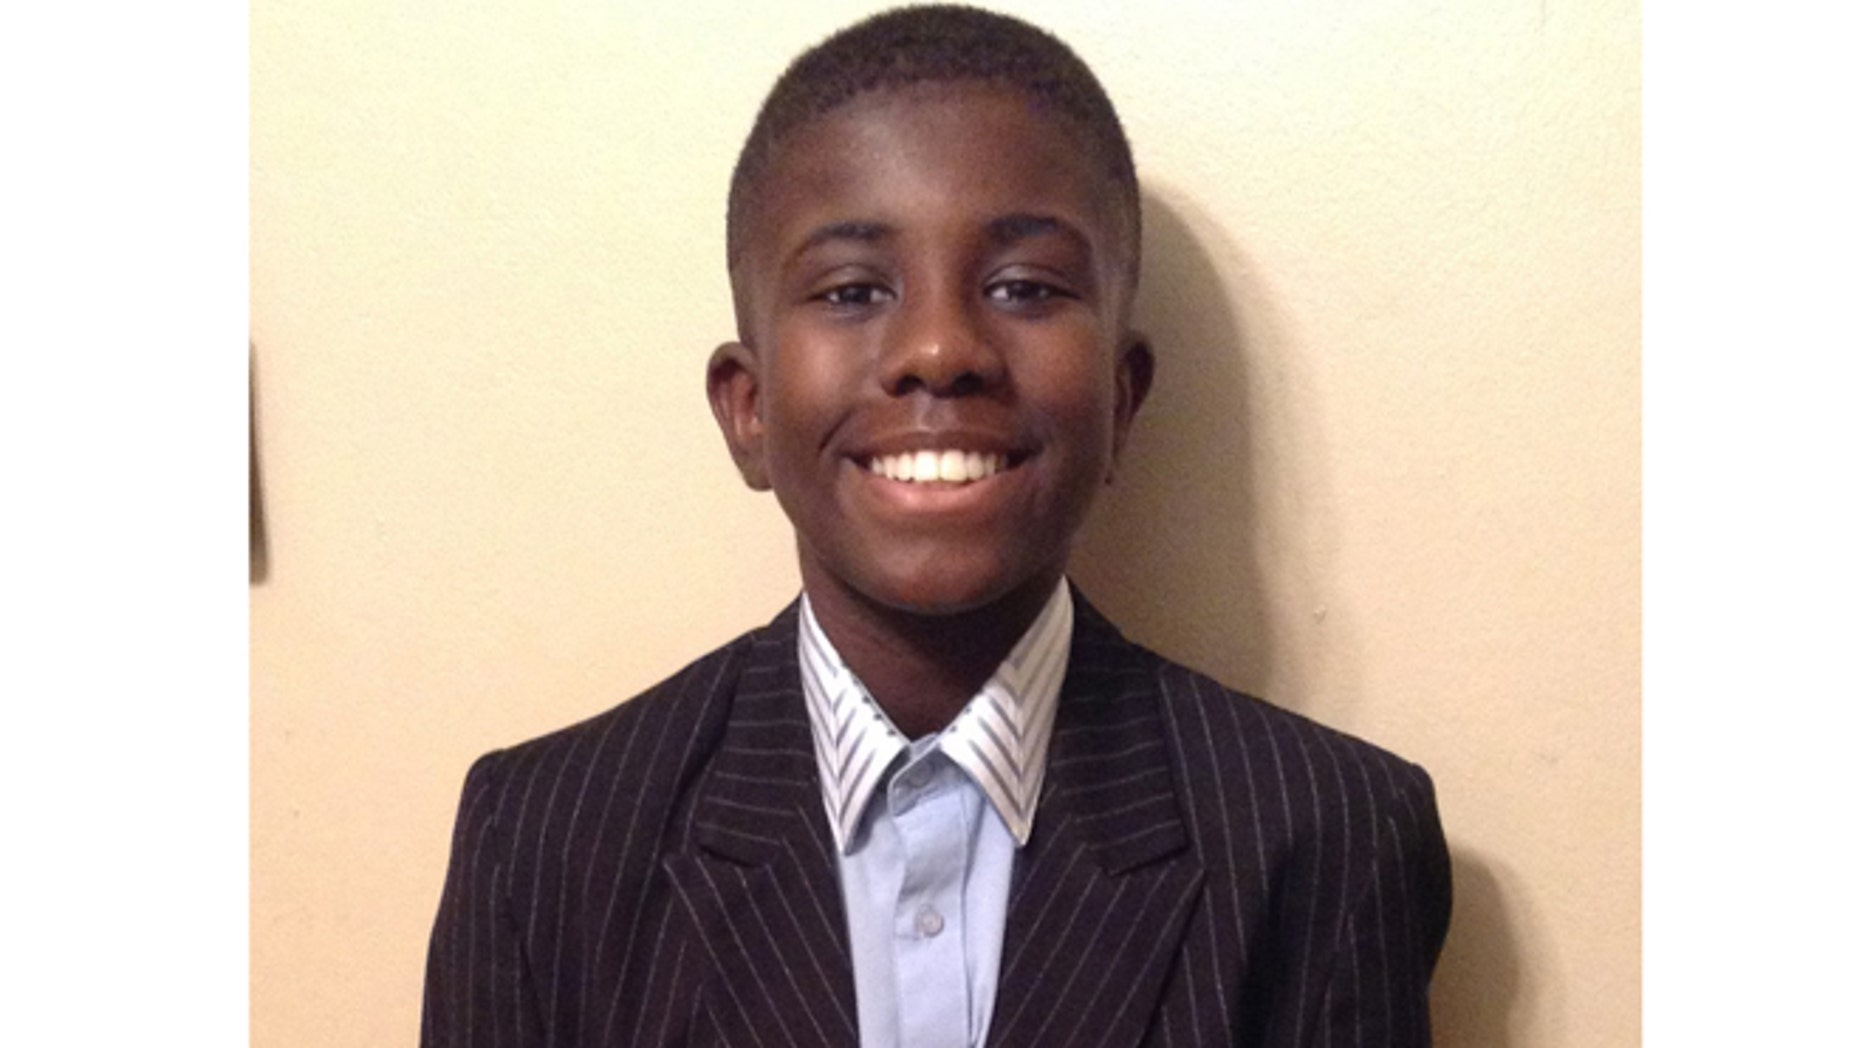 This photo released by the Detroit Police Department shows Charlie Bothuell V, 12, of Detroit.